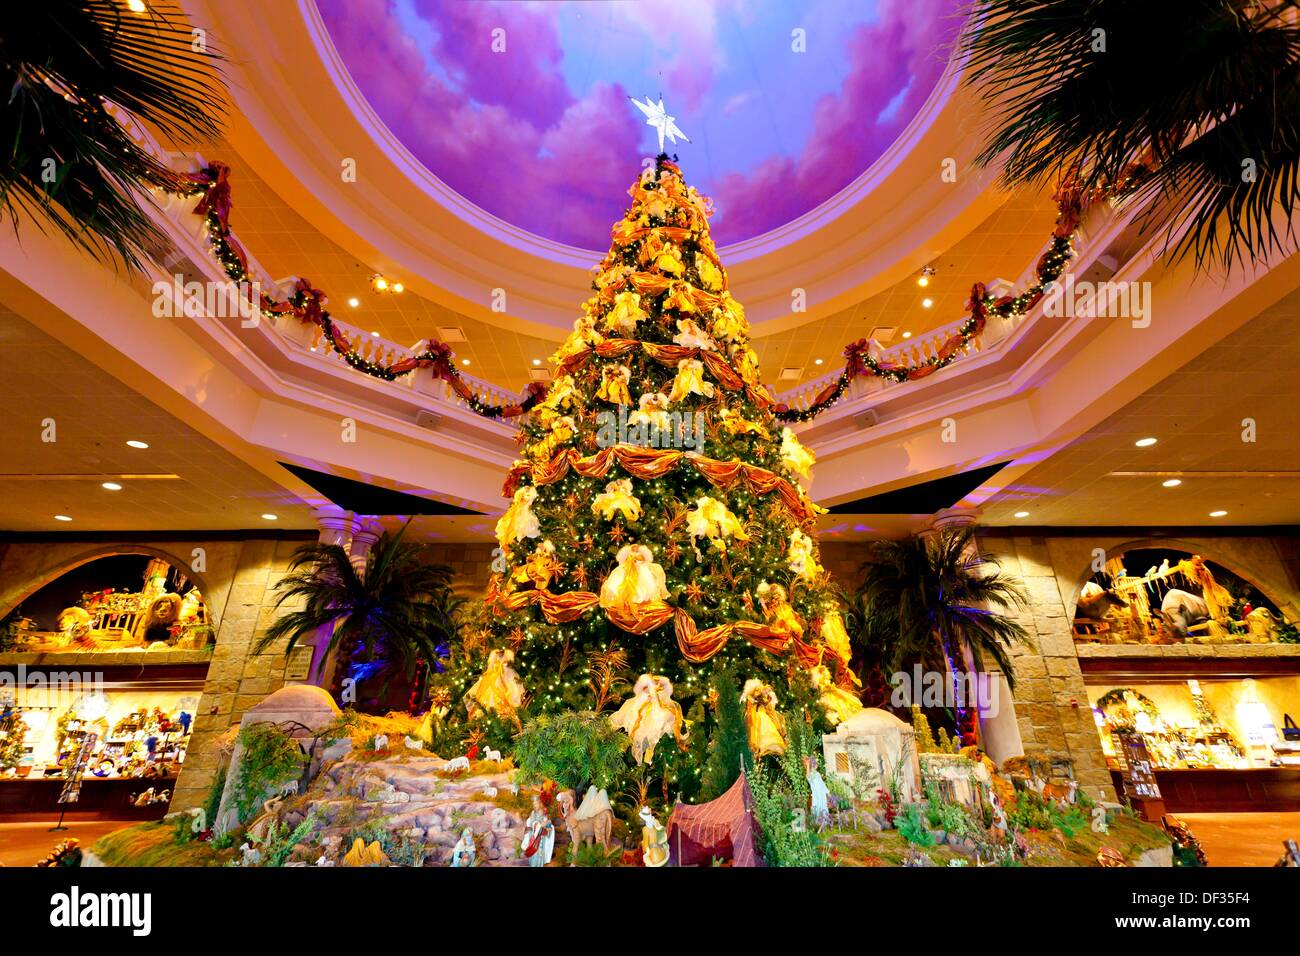 the indoor decorated christmas tree at the sound and light theater in branson missouri